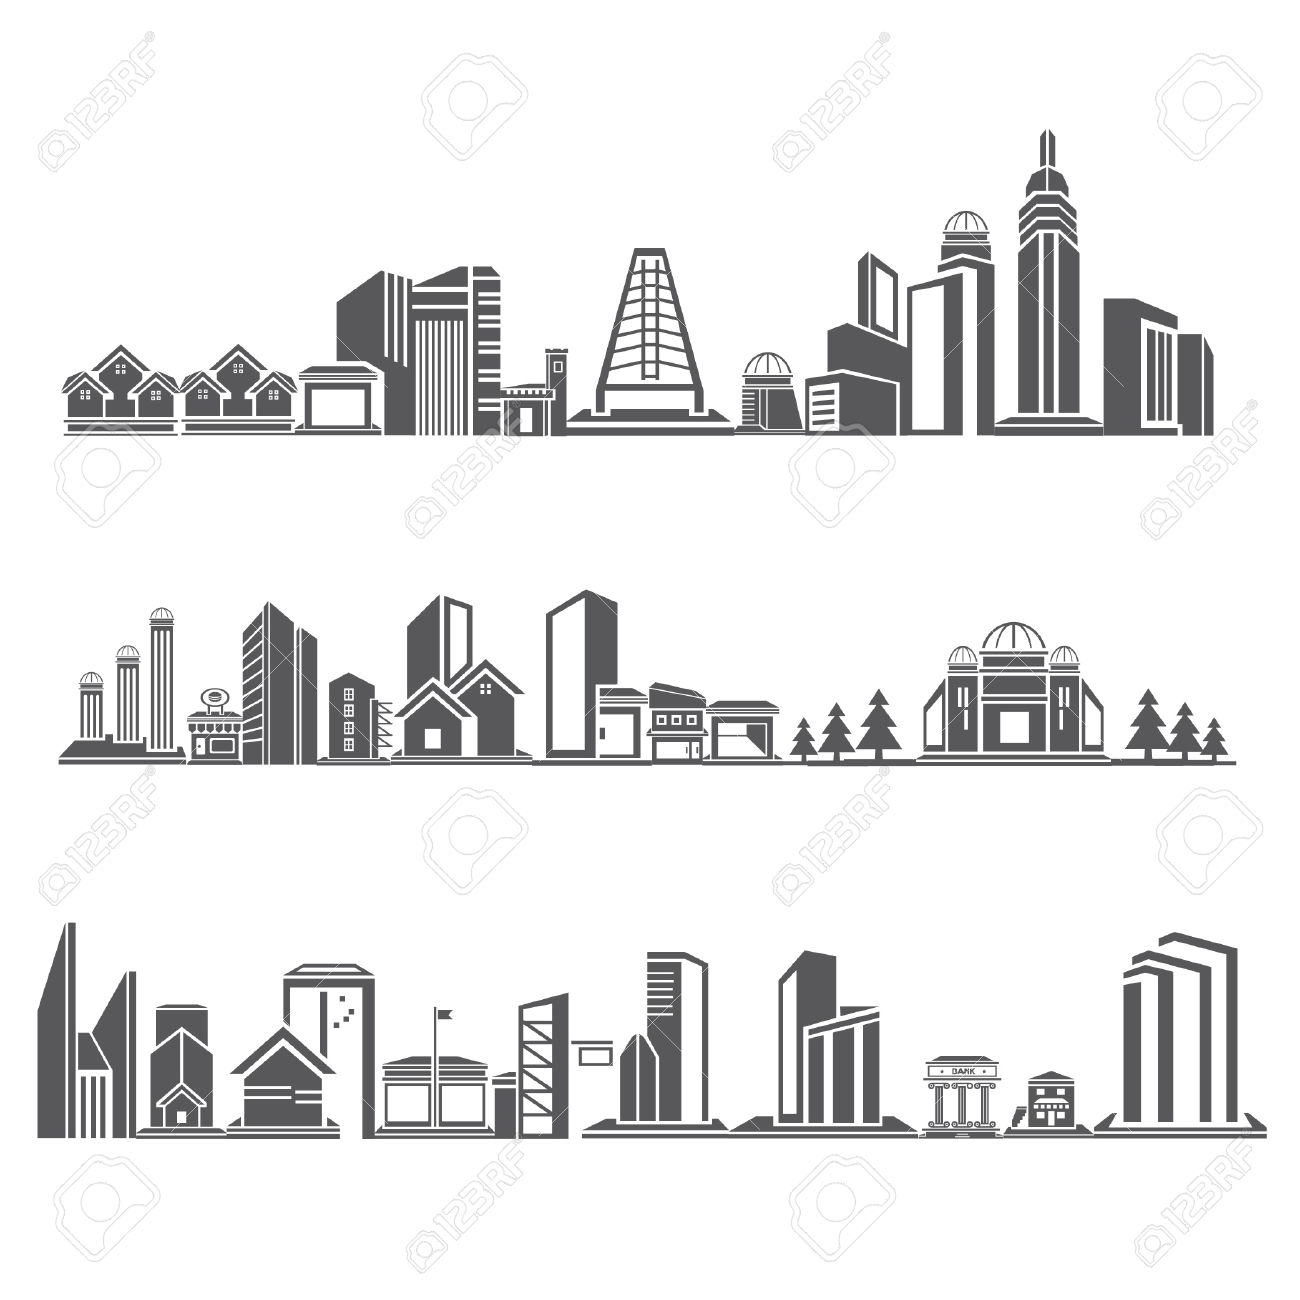 Borough Clipart